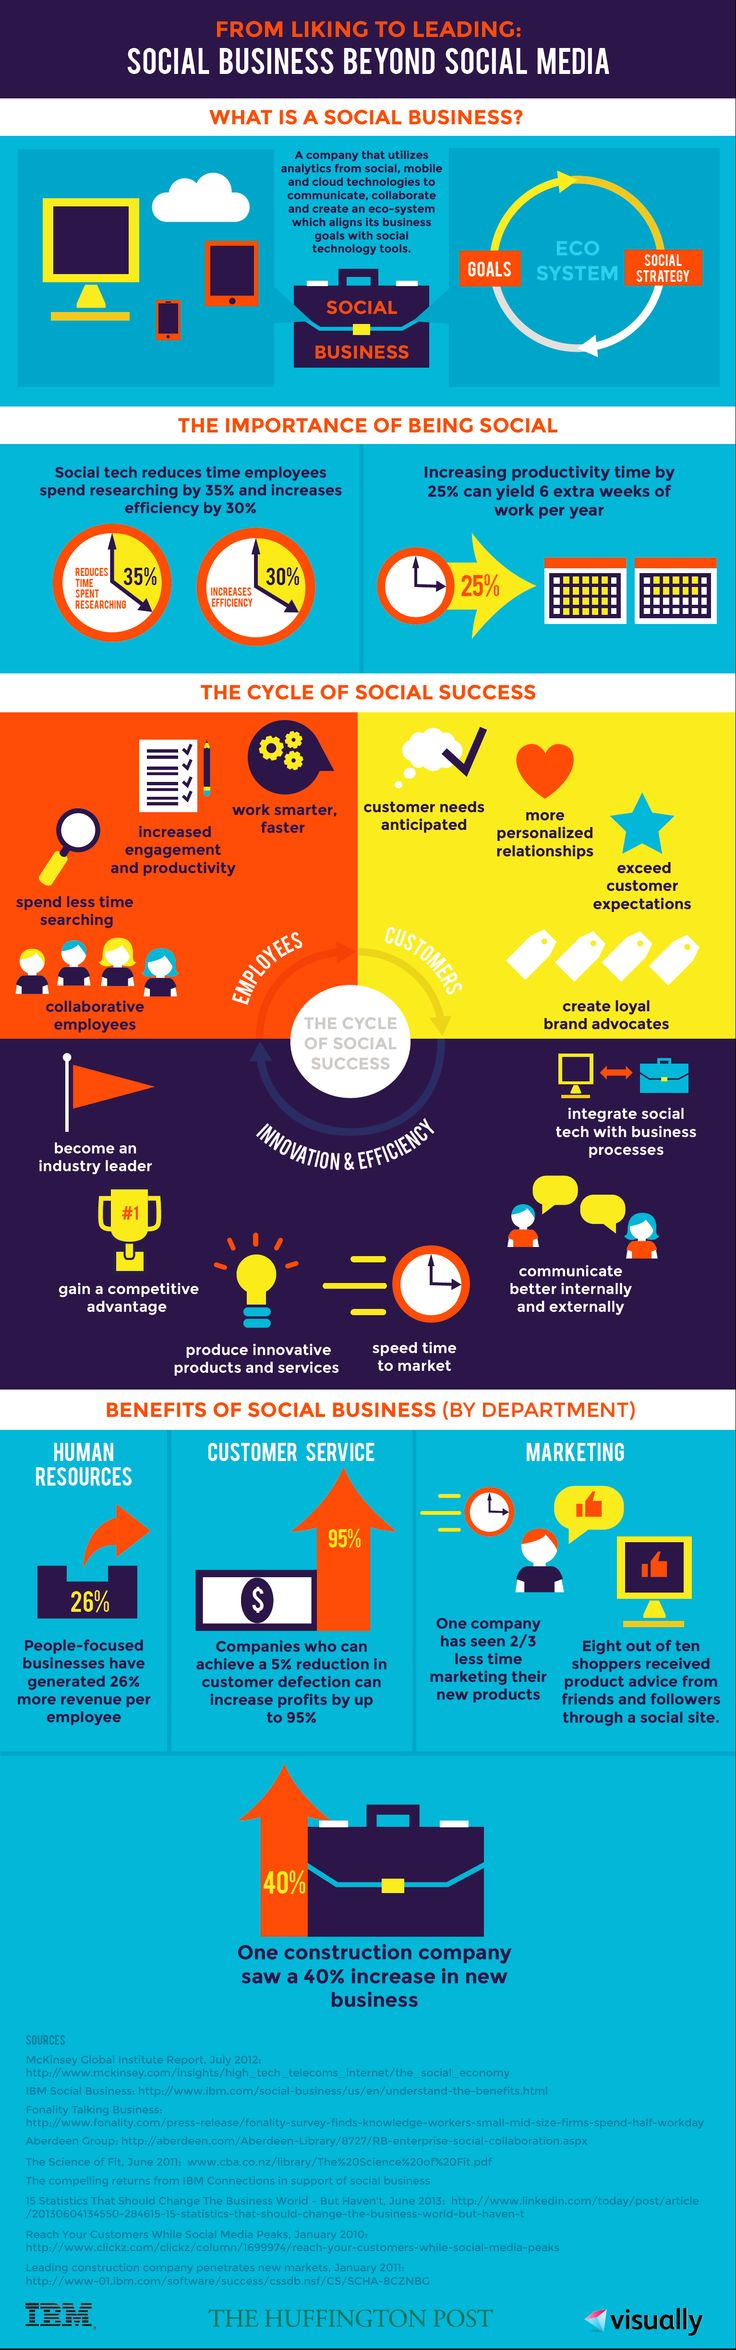 What is a social business? From liking to leading, and beyond social media.